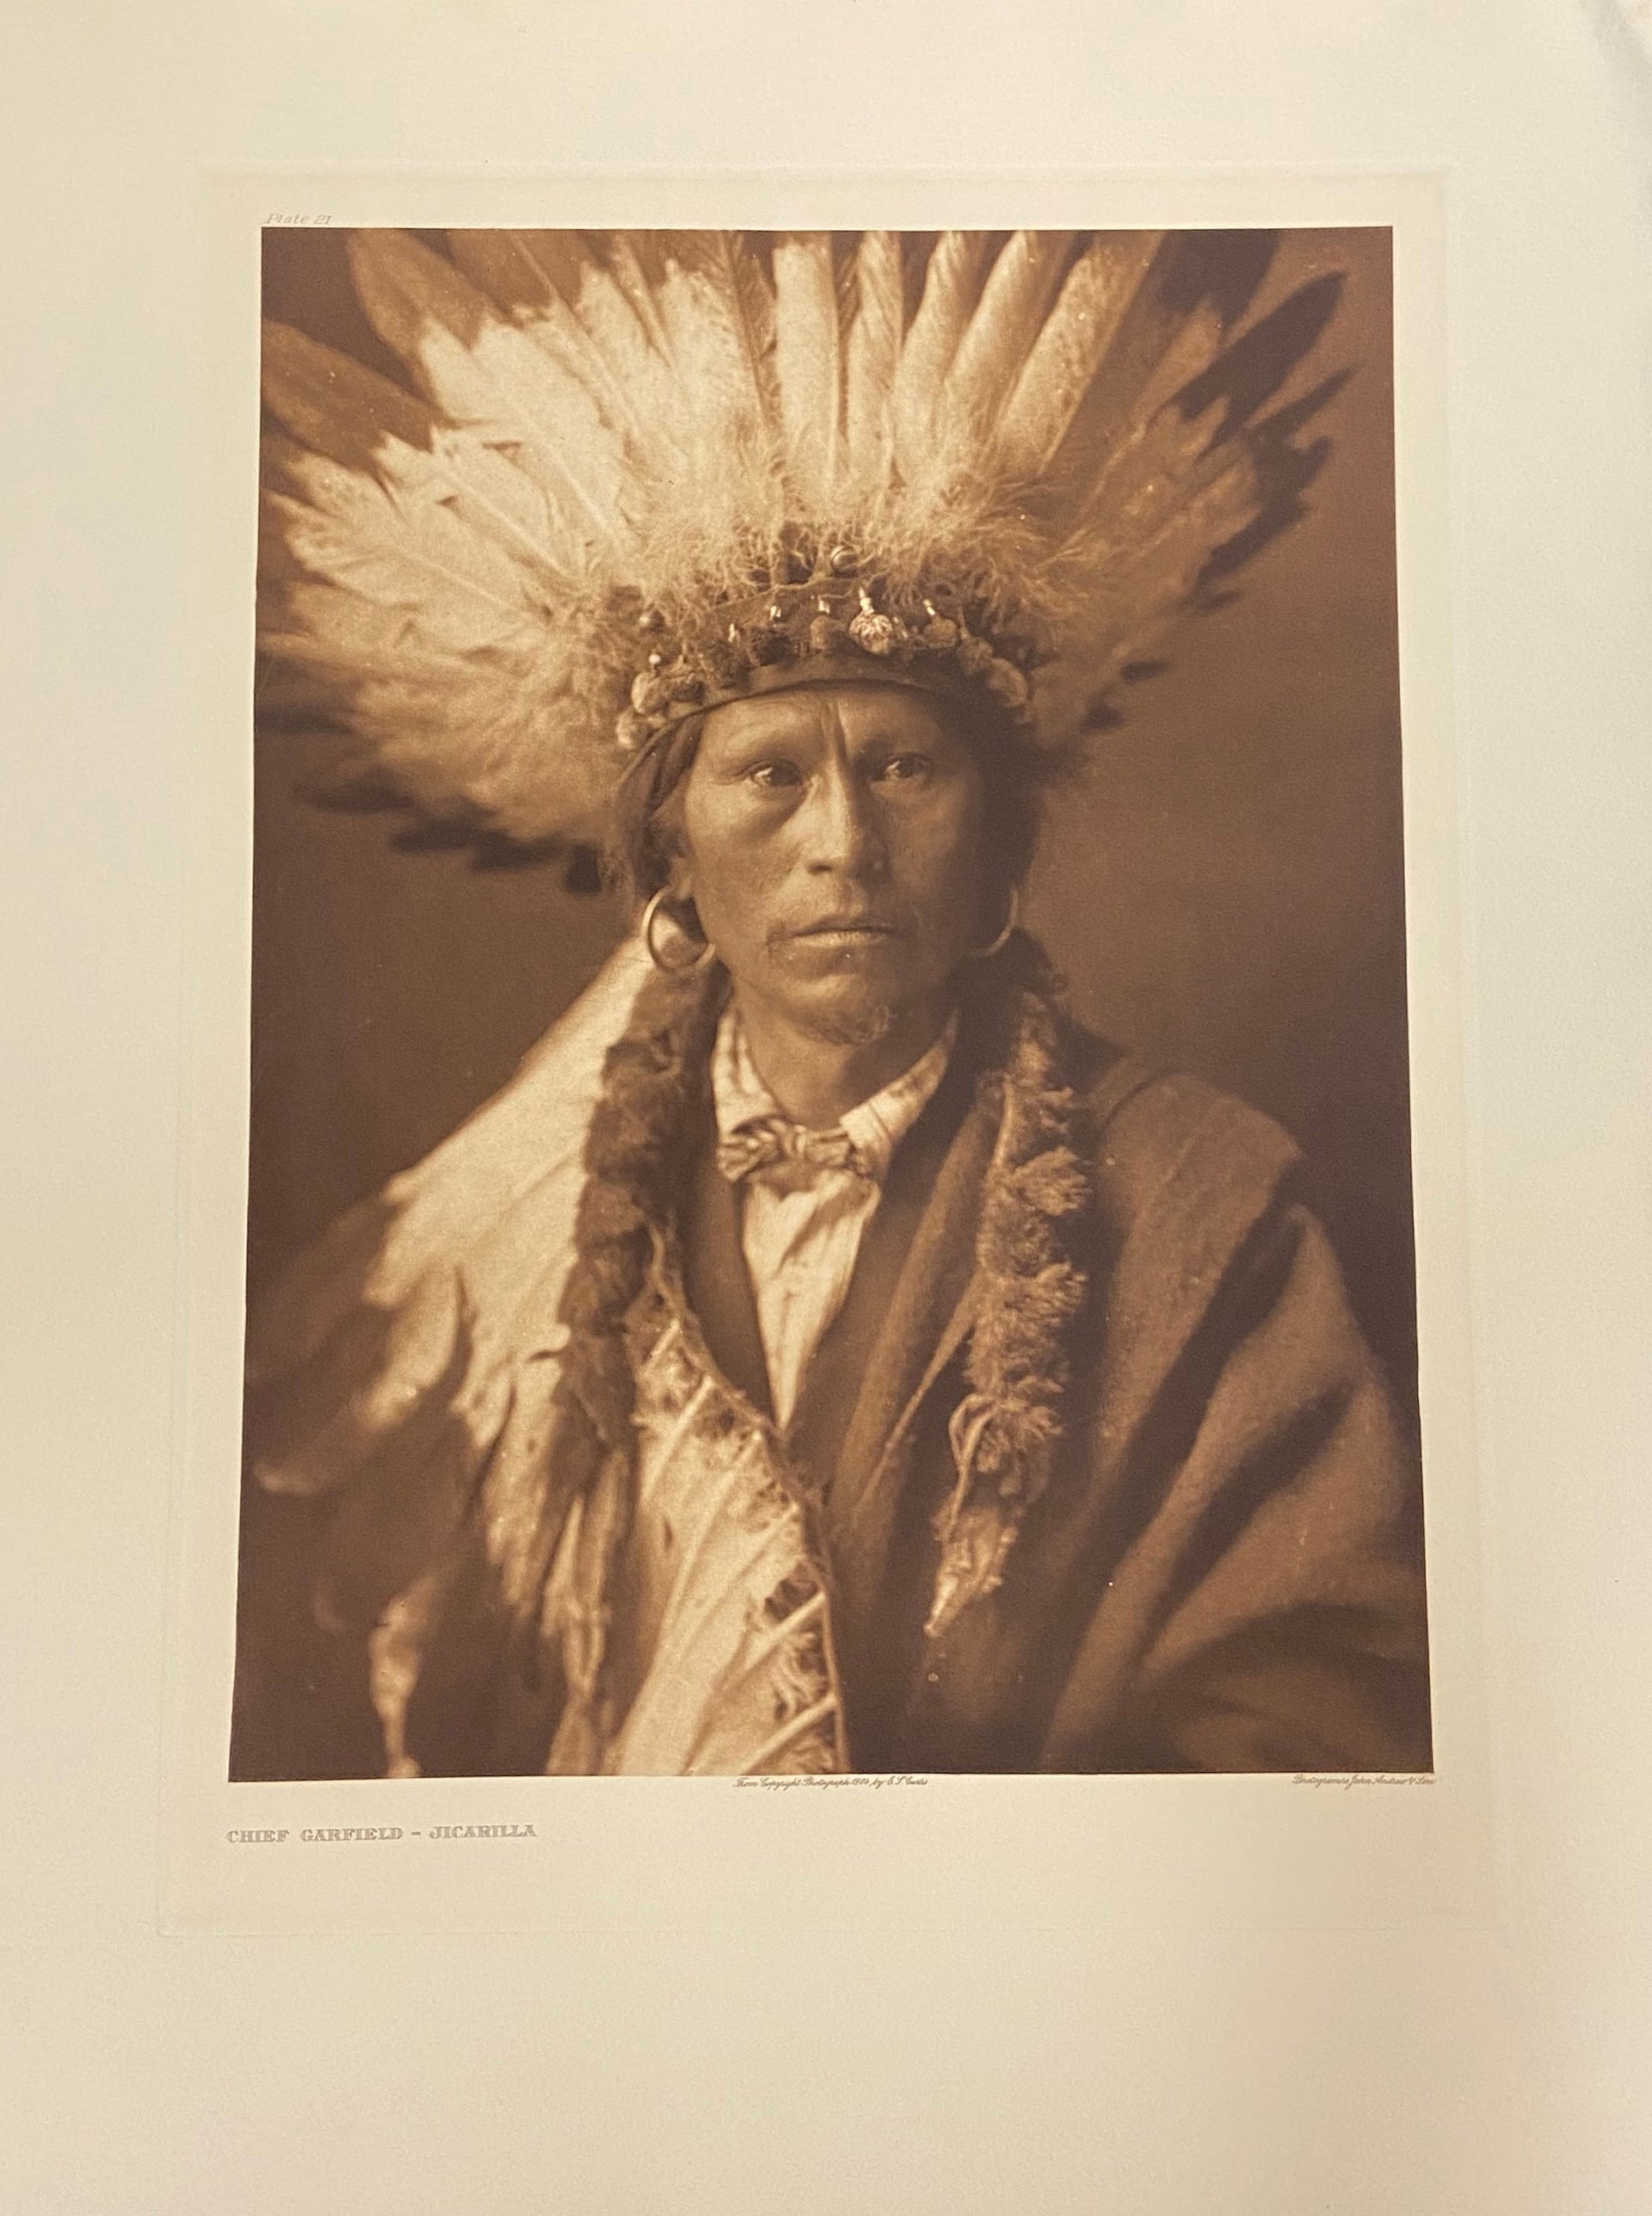 Chief Garfield - Jicarilla